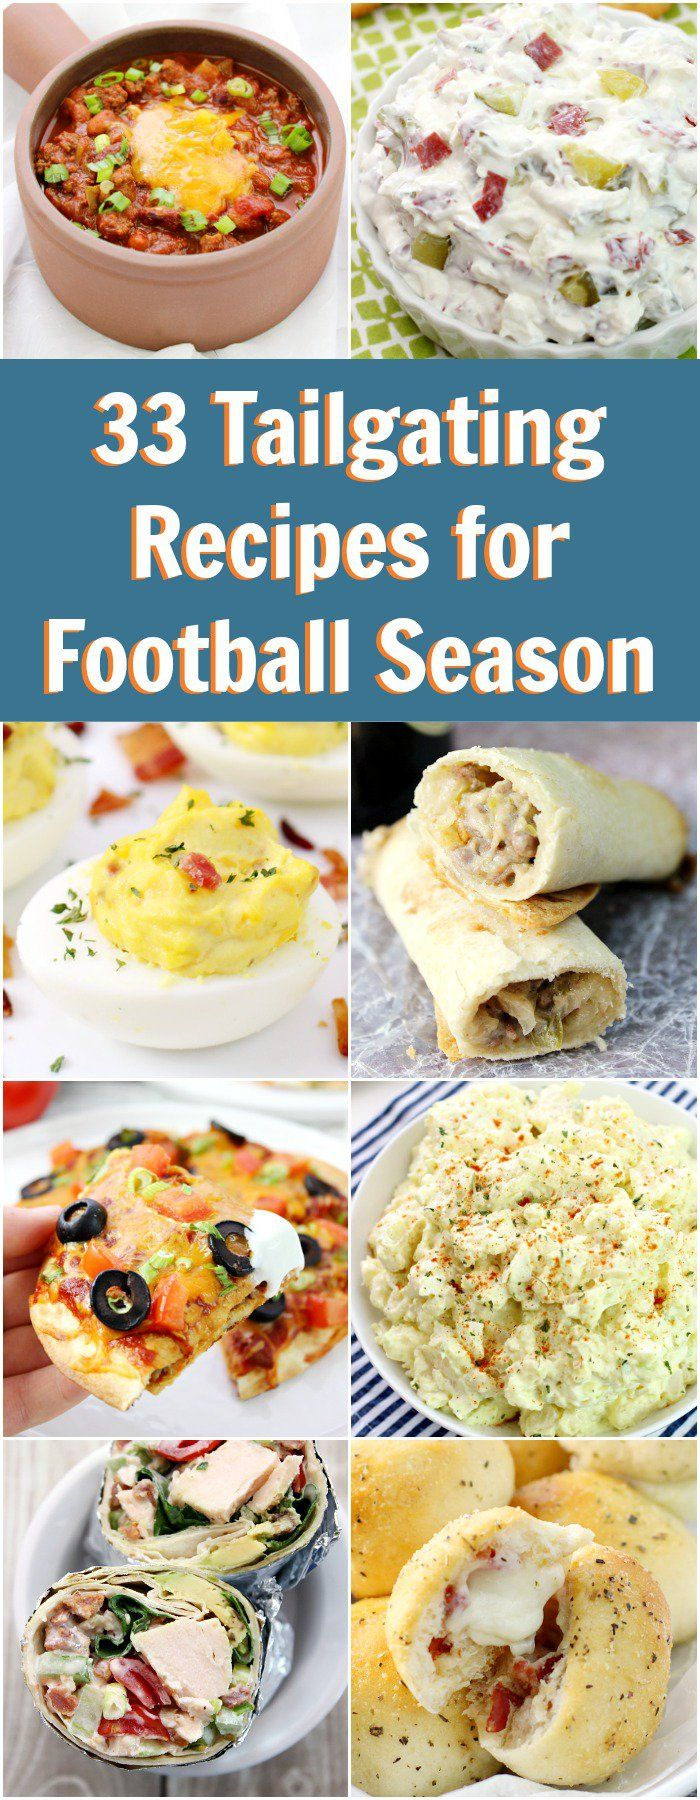 33 Tailgating Recipes for Football Season (Food Recipes College)